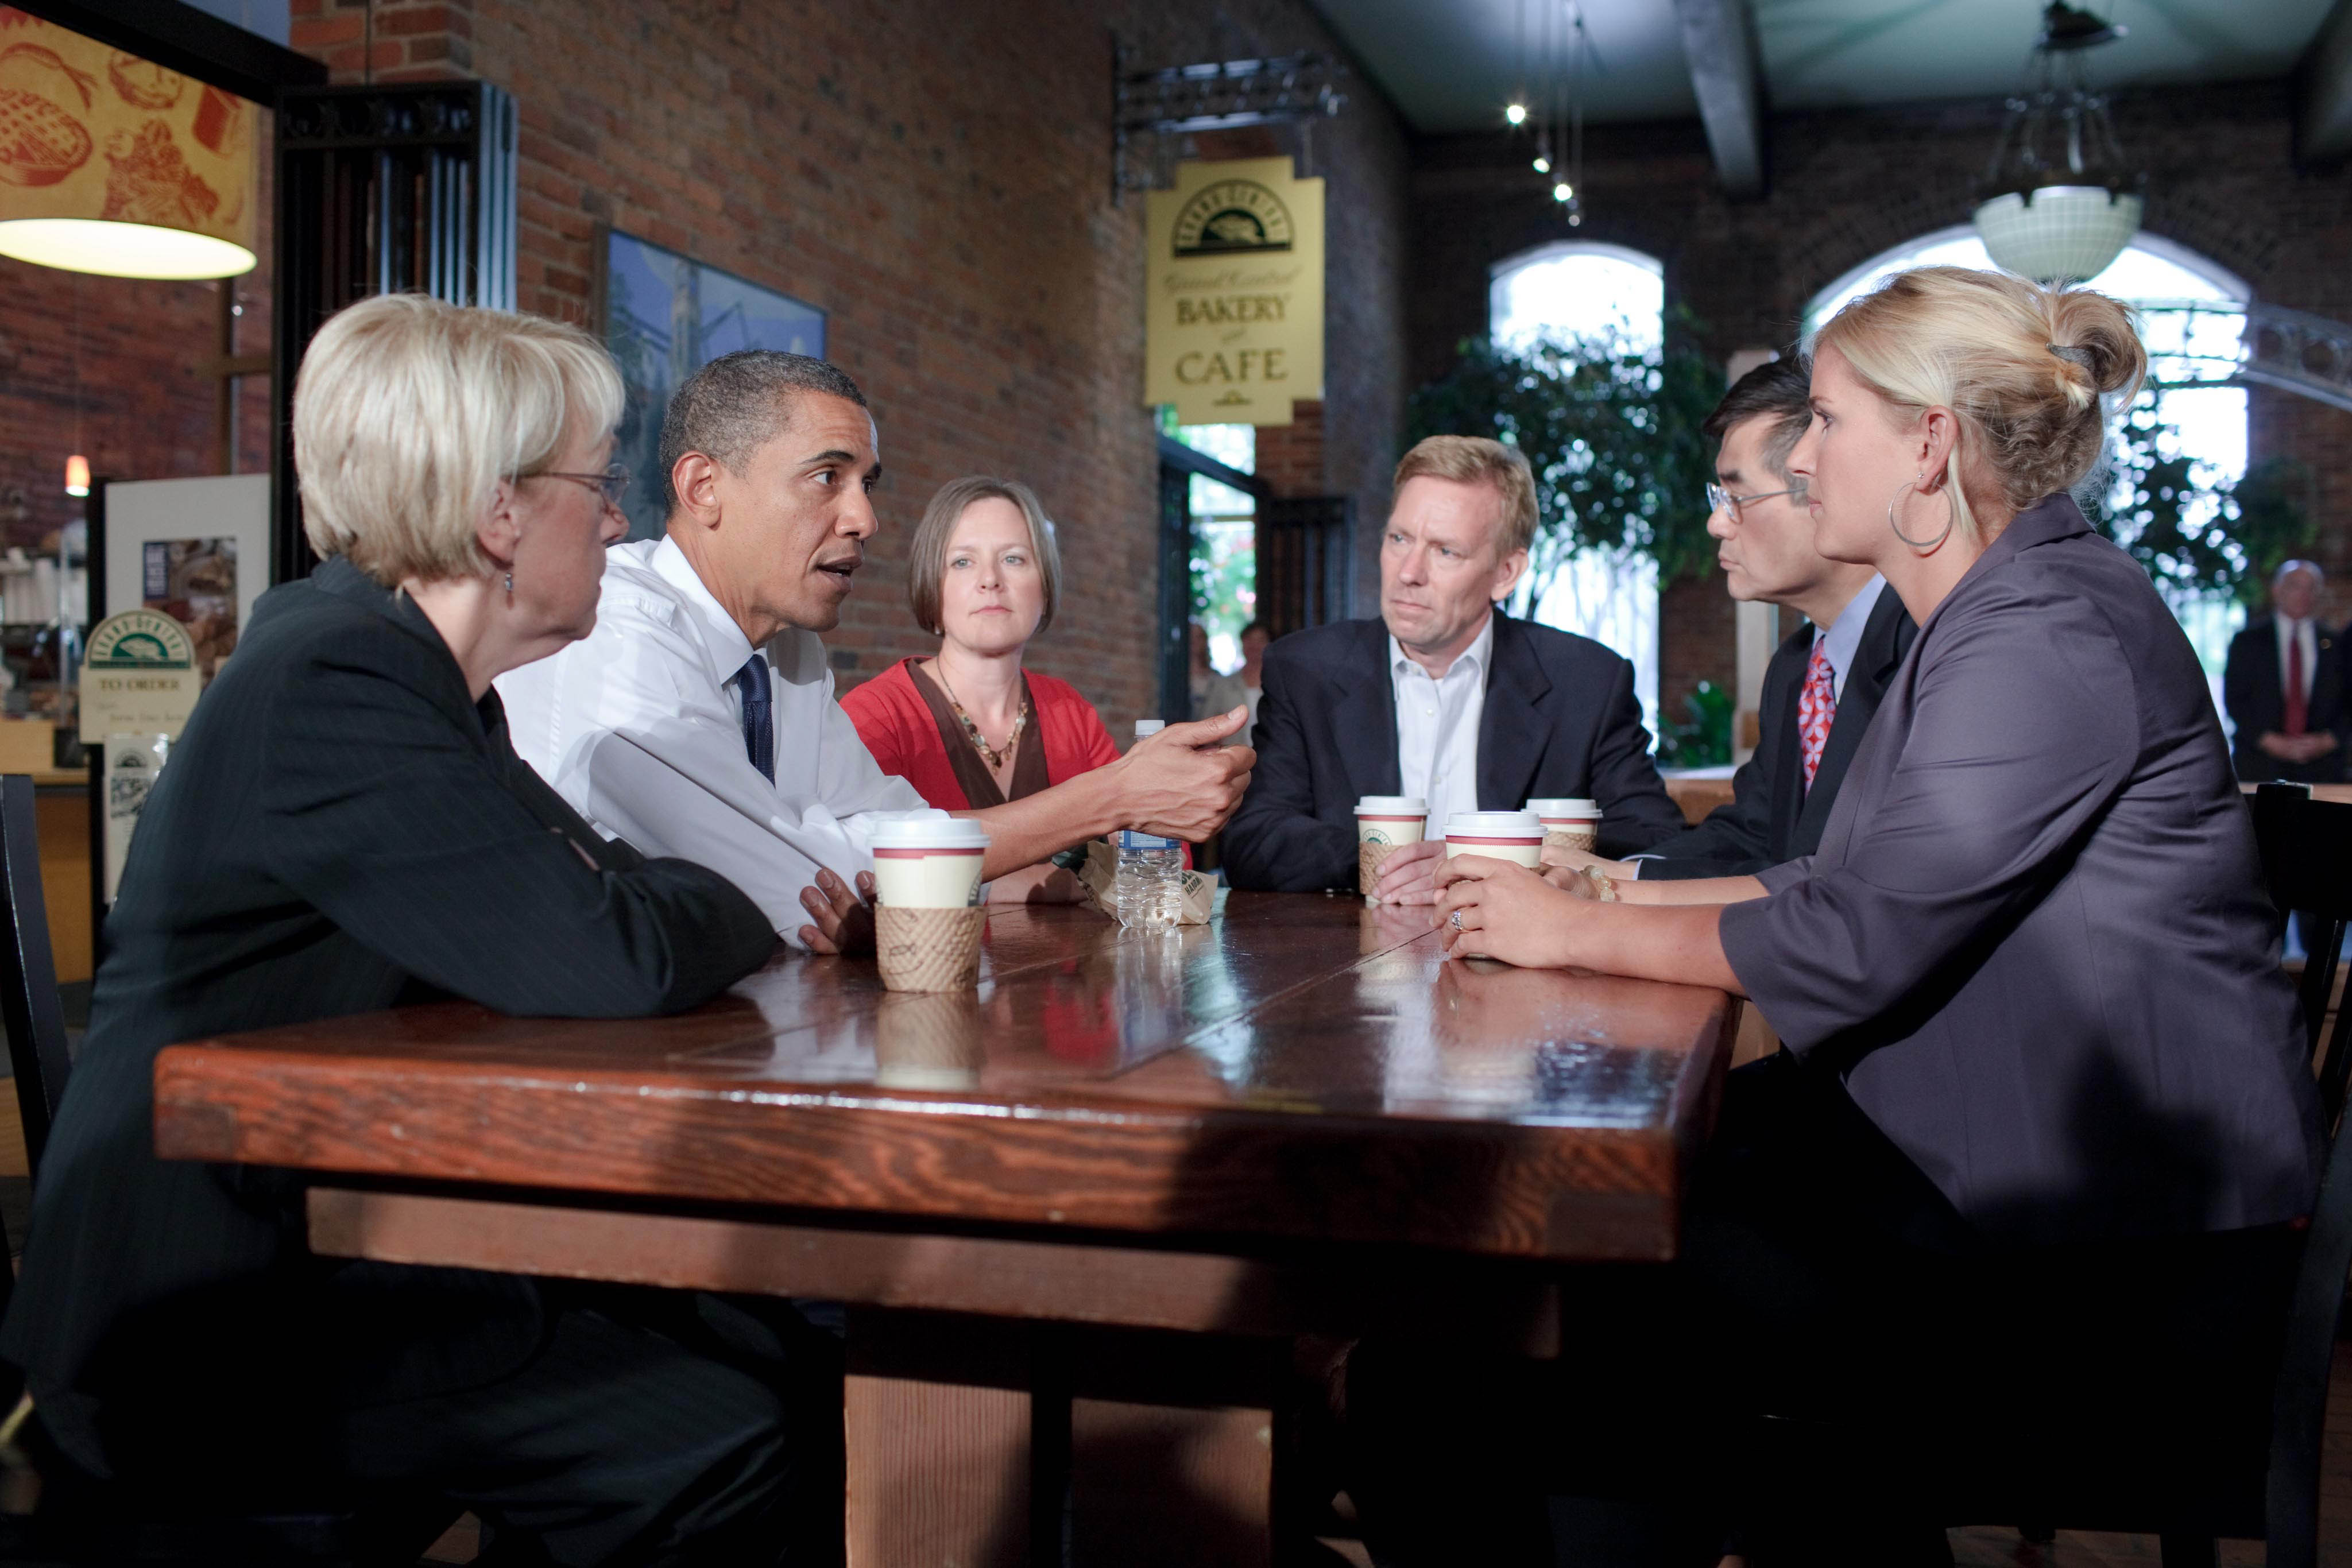 President Obama meets with small business owners in Seattle